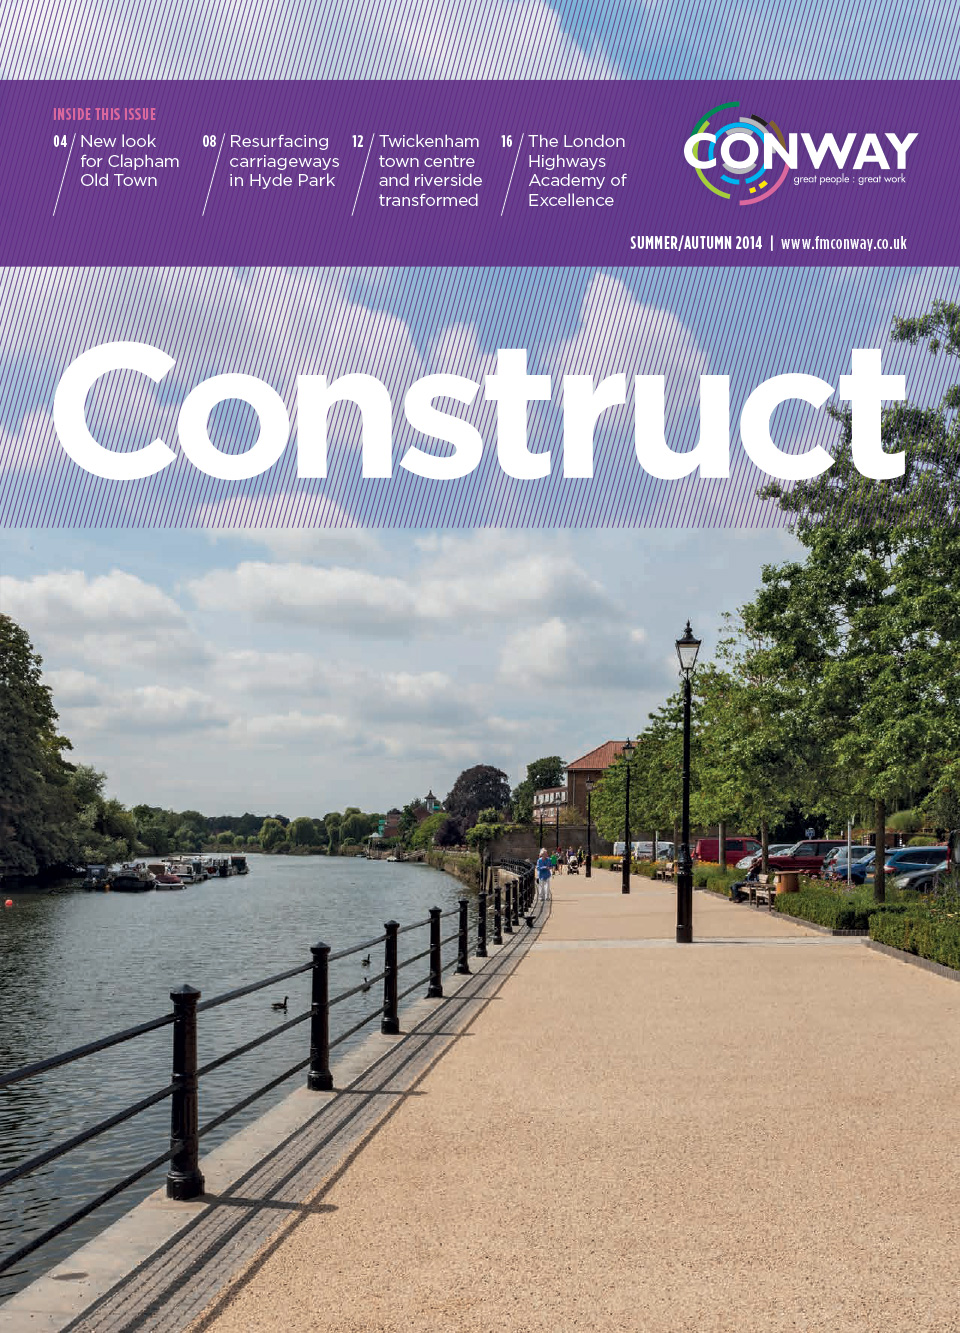 /files/library/images/about us/Construct magazine/Summer 2014/page_1.jpg